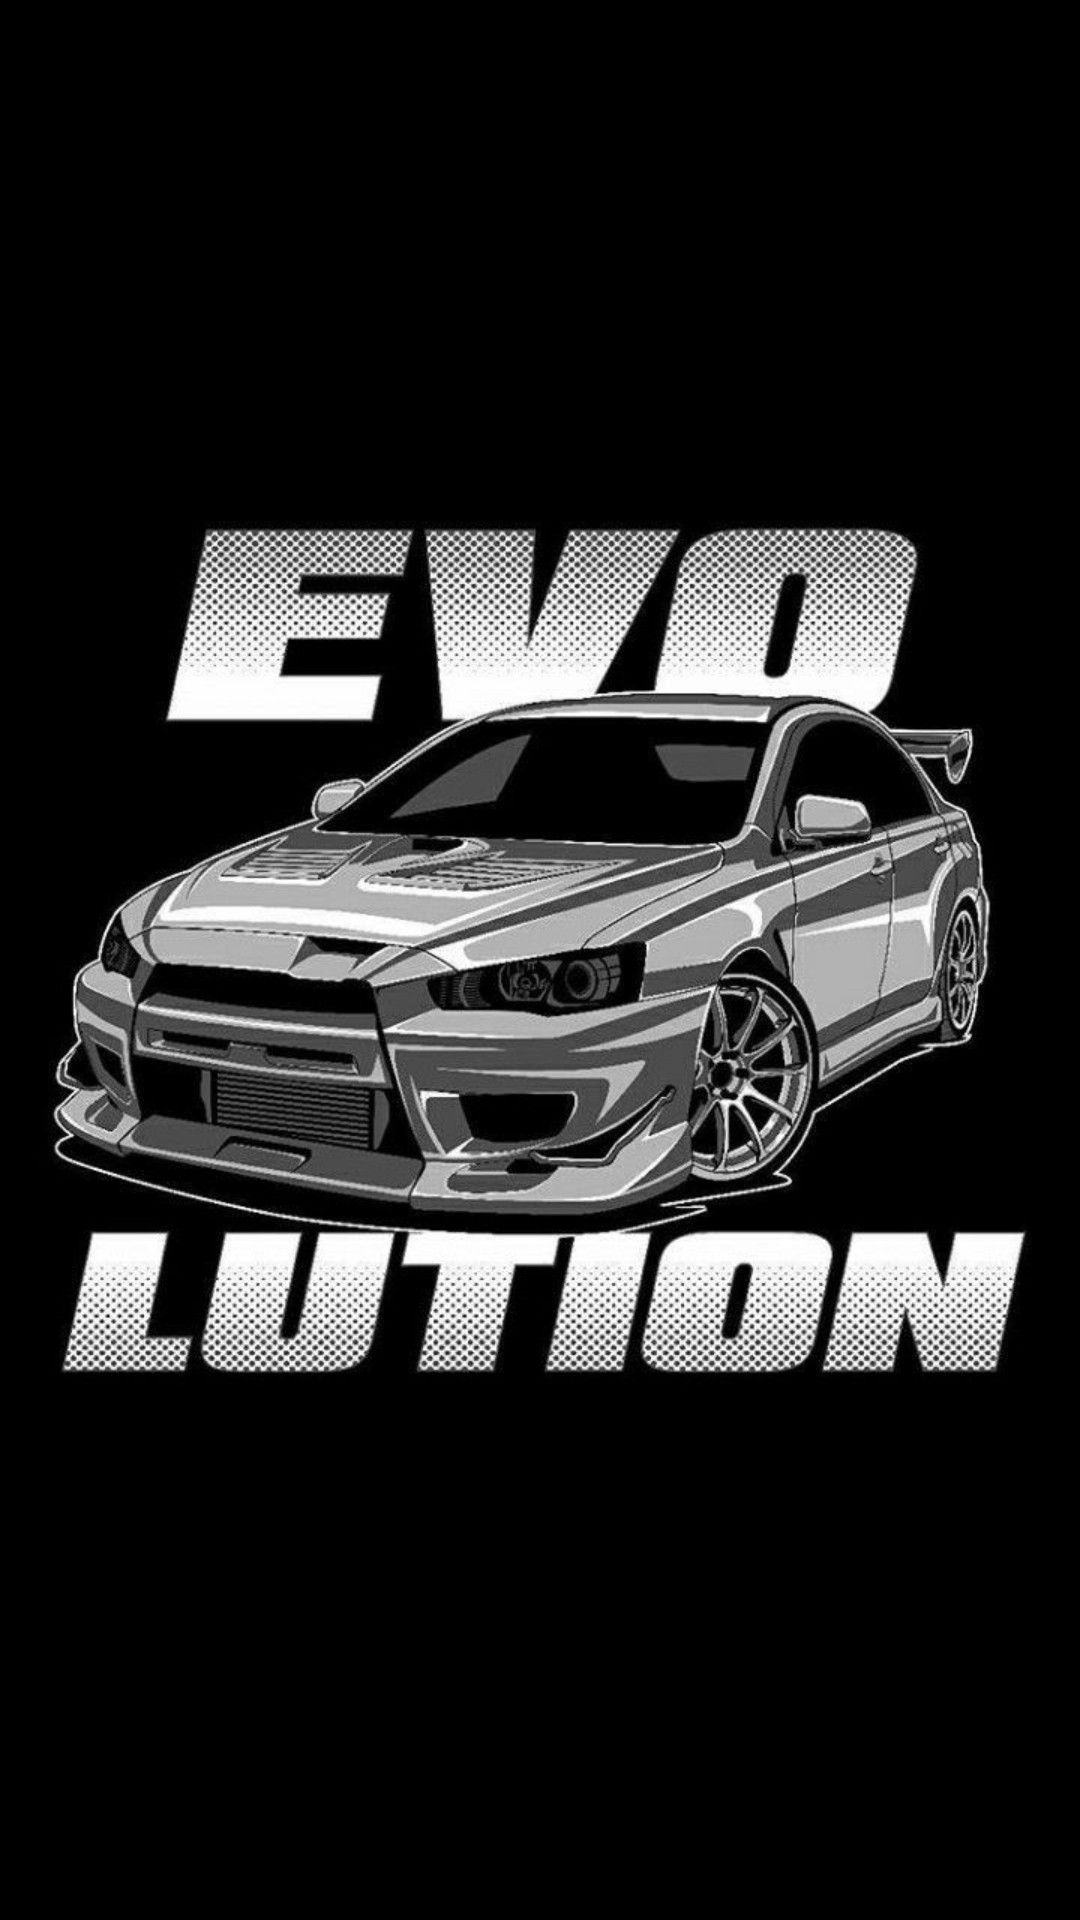 Pin By Md Syamim On Cartoon Jdm Car With Images Street